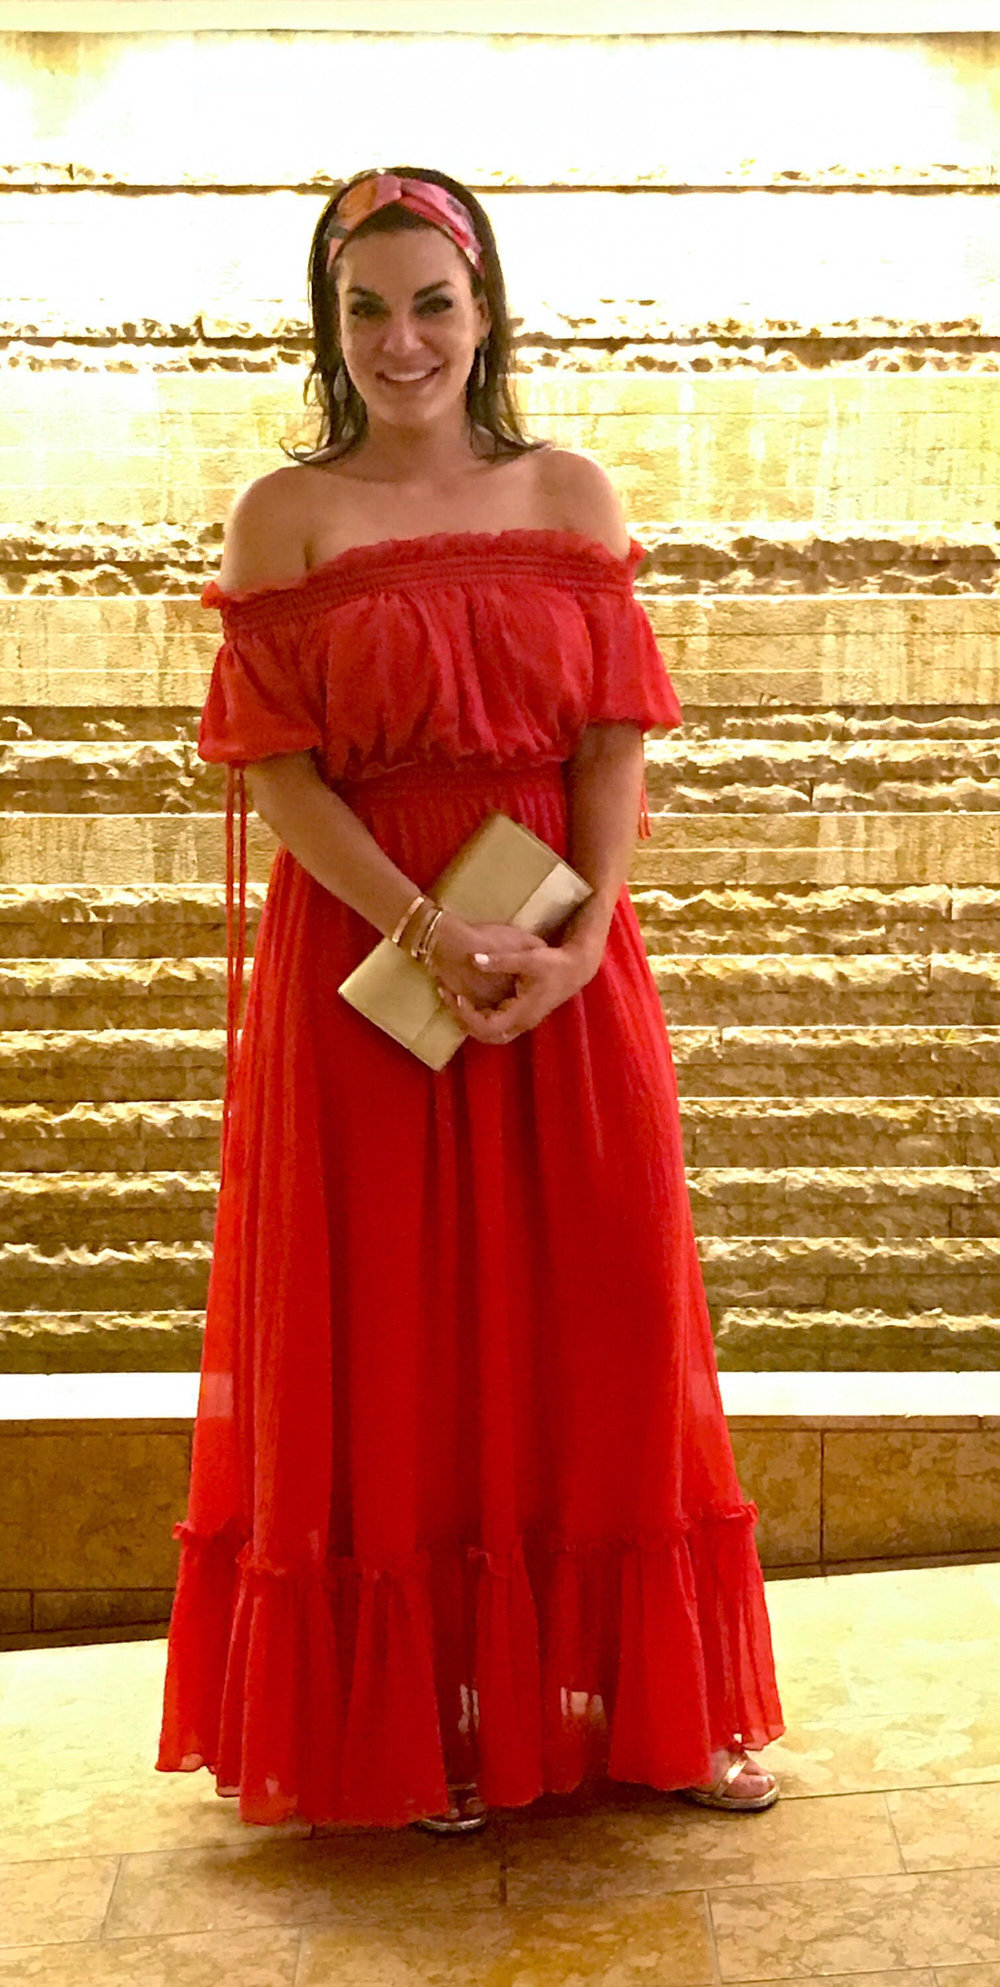 Capri Nights - Wearing Alexander McQueen Red Off the Shoulder Dress, Maha Lozi Earrings with YSL Clutch, Shoes and Gucci Headband